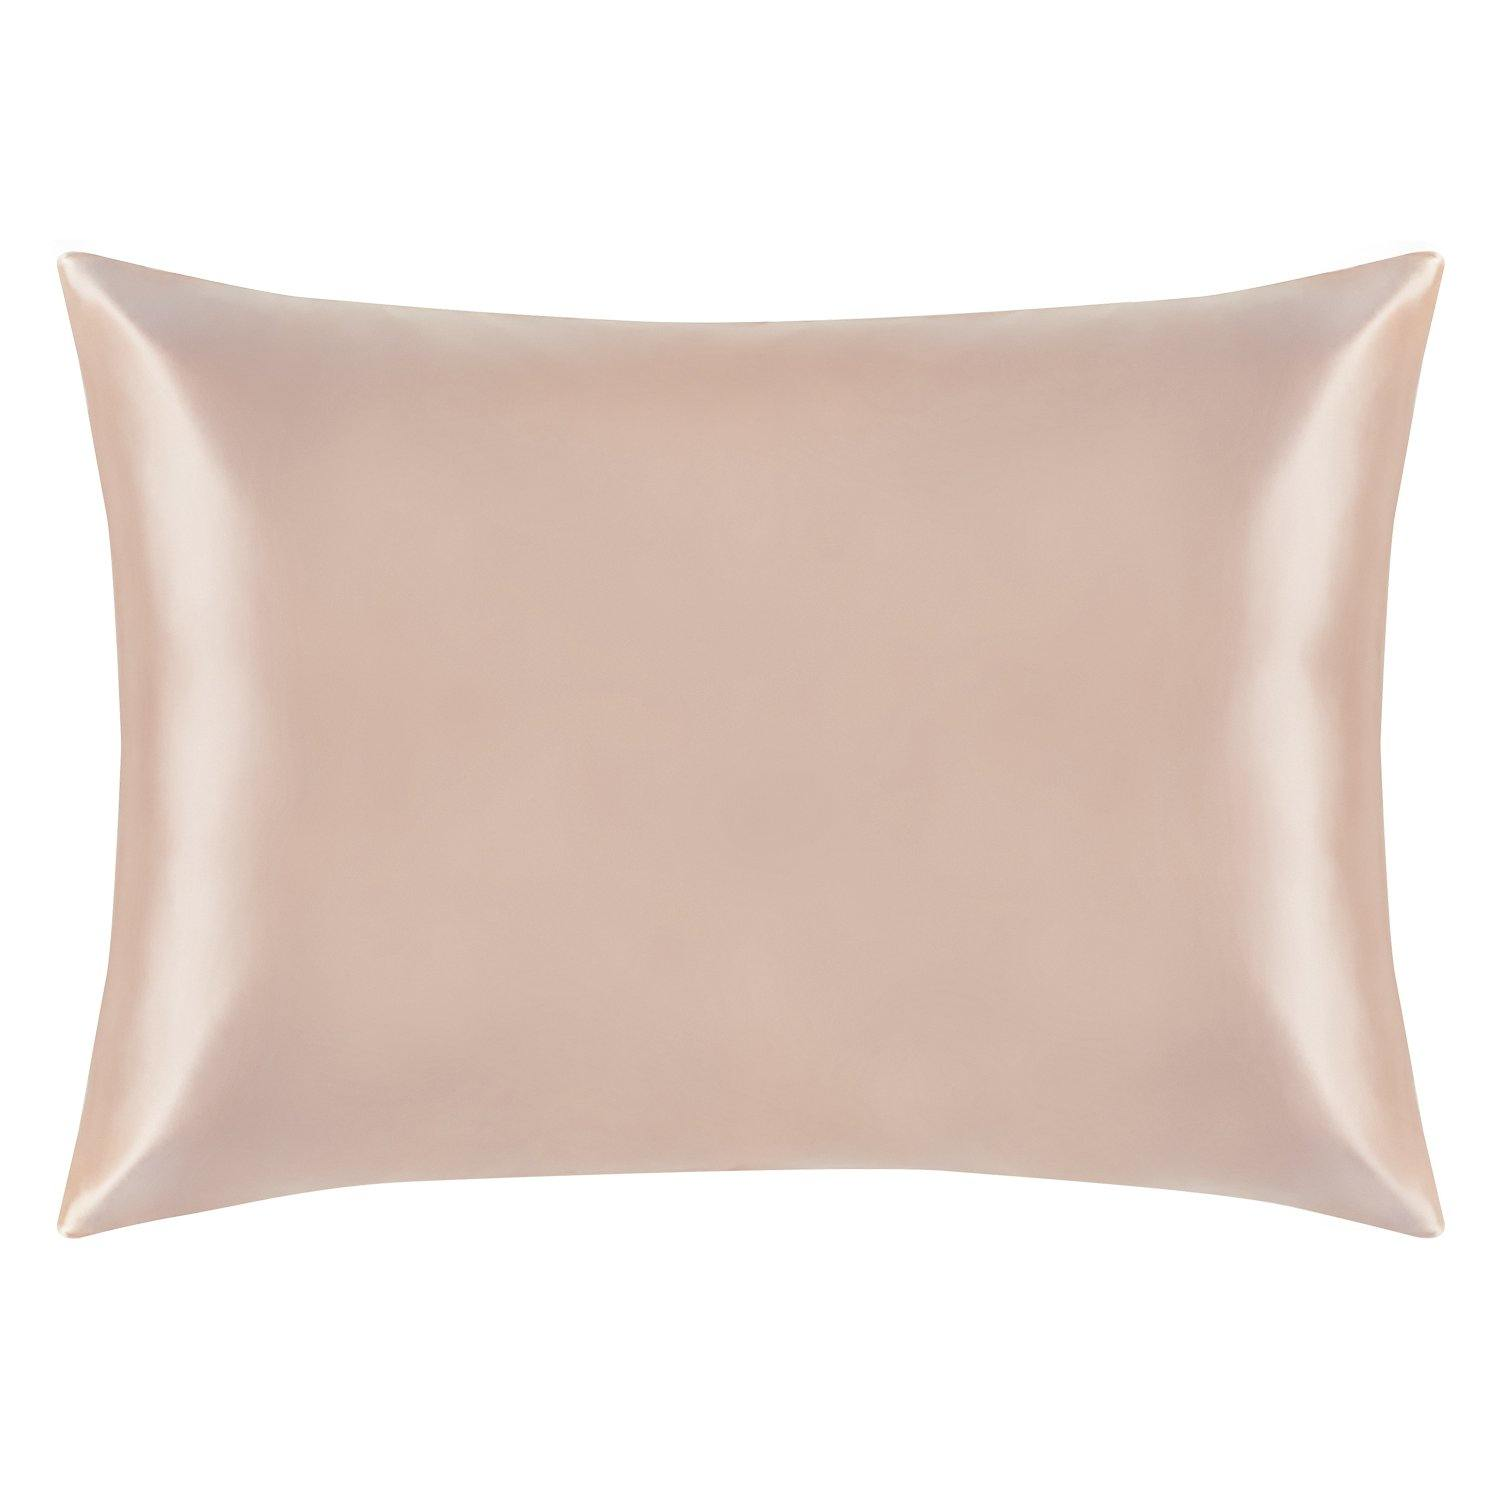 NTBAY soft mulberry silk pillowcase, pink, Queen/King